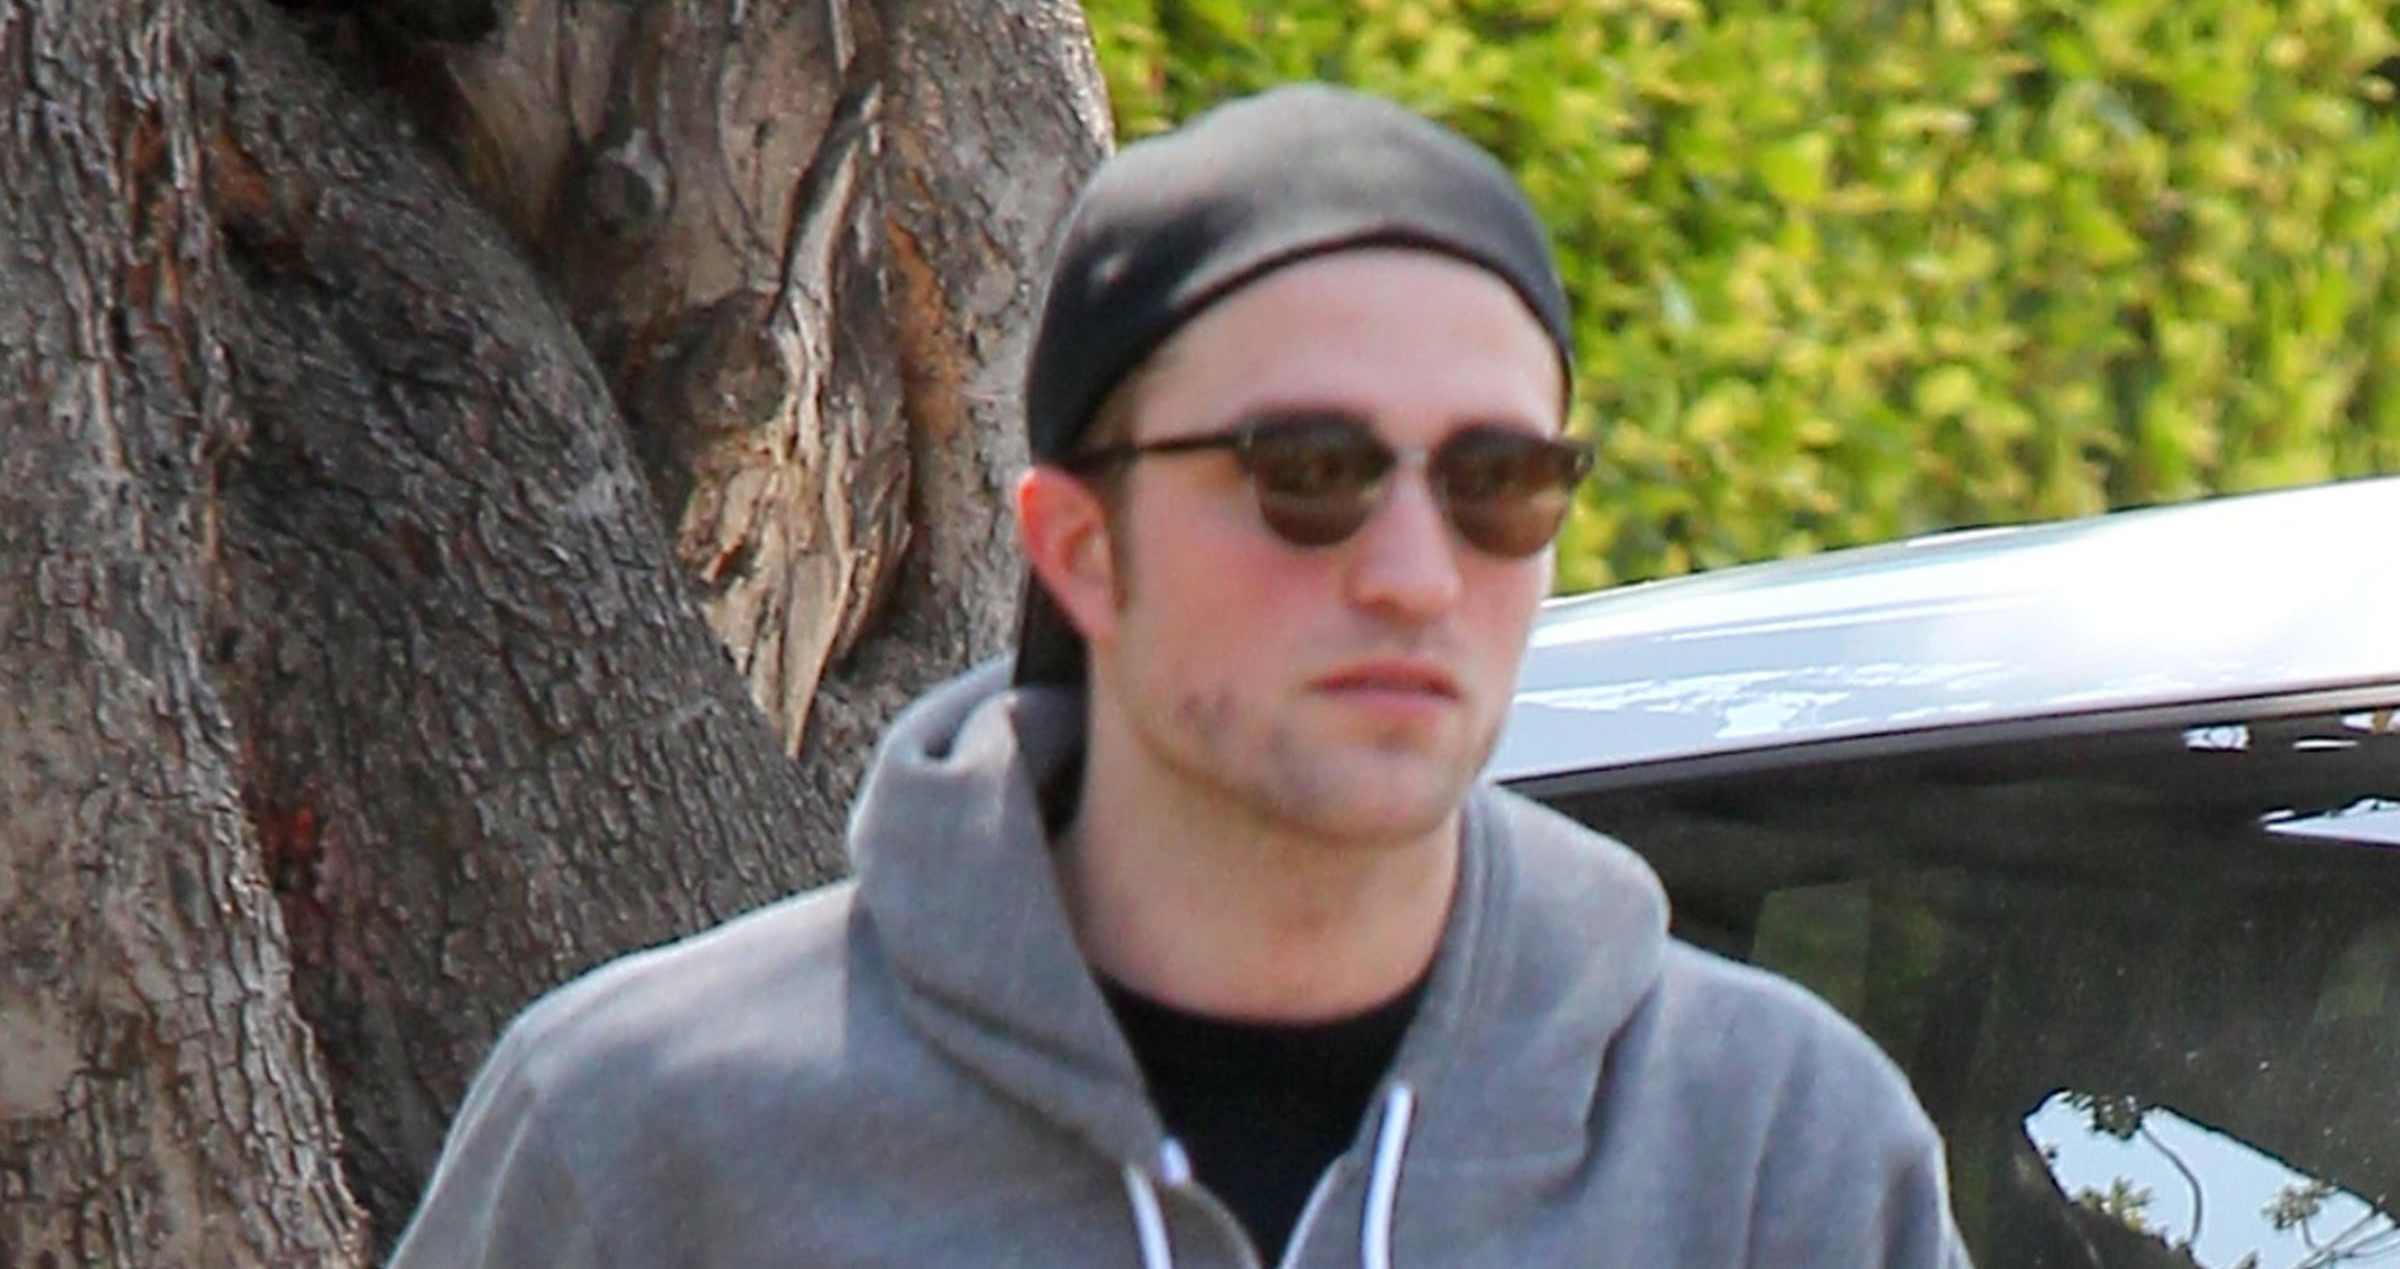 Fotos de Robert em Los Angeles (01/04)